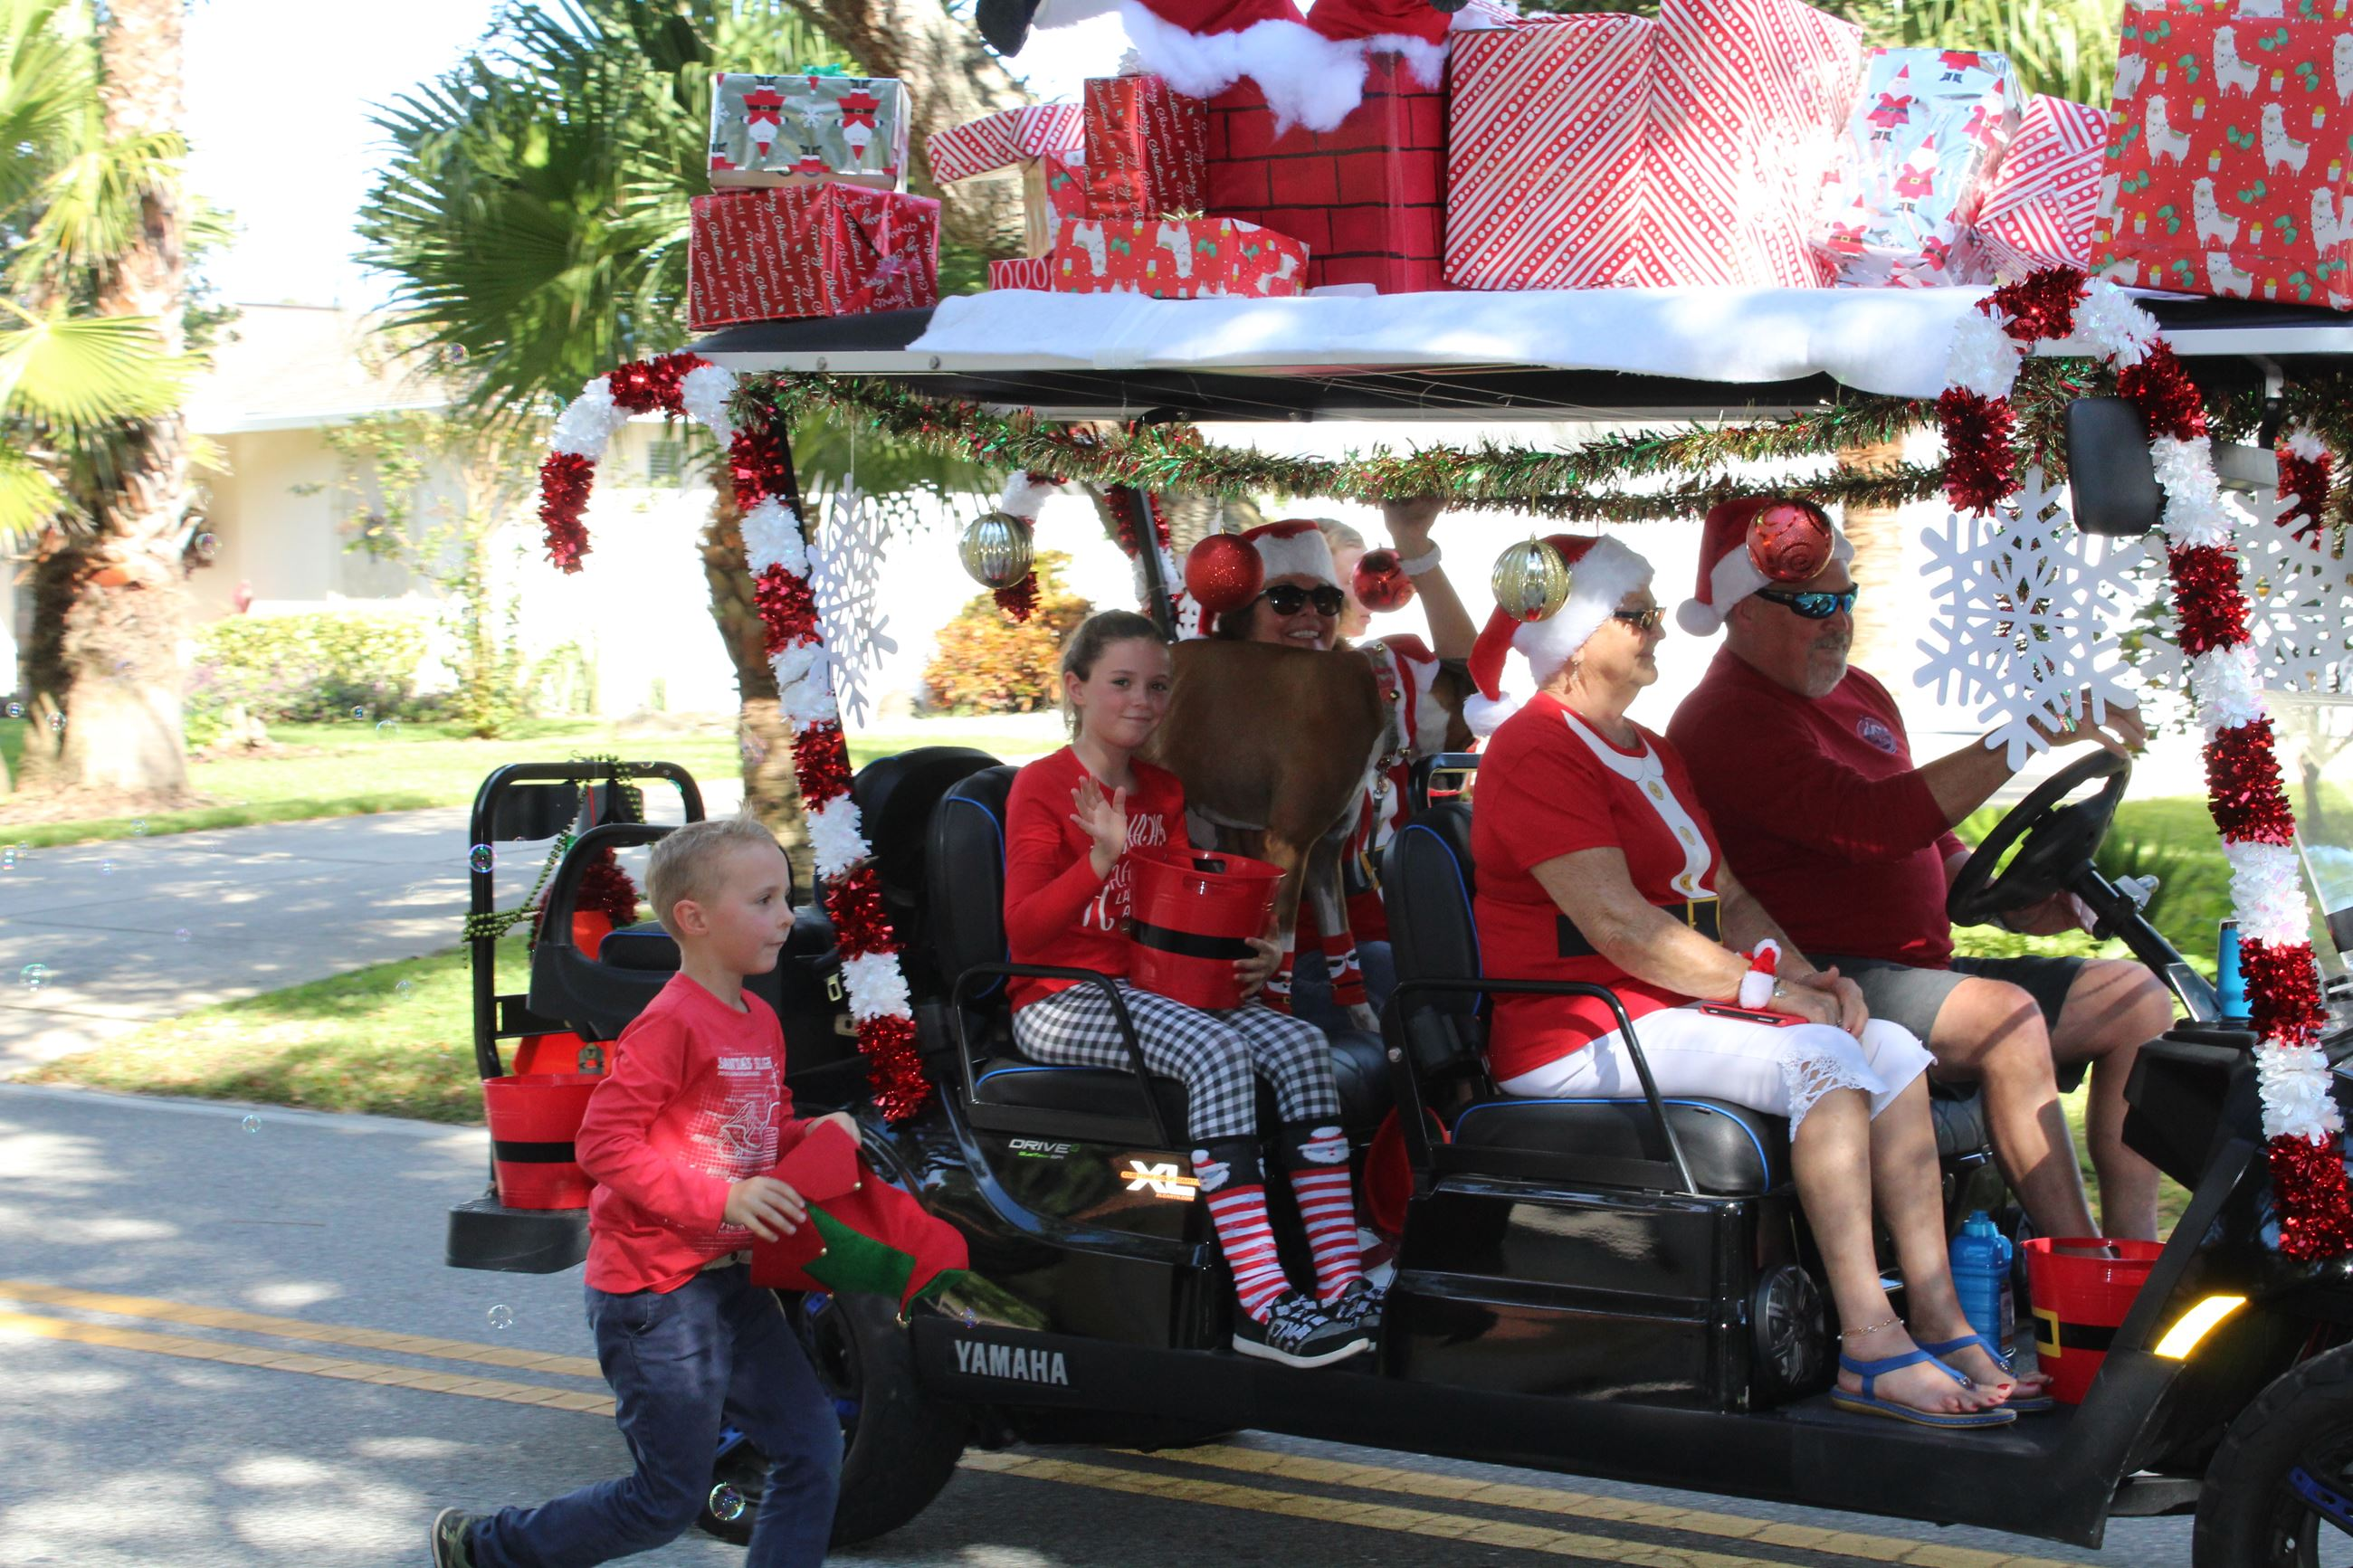 family riding in holiday decorated golf cart